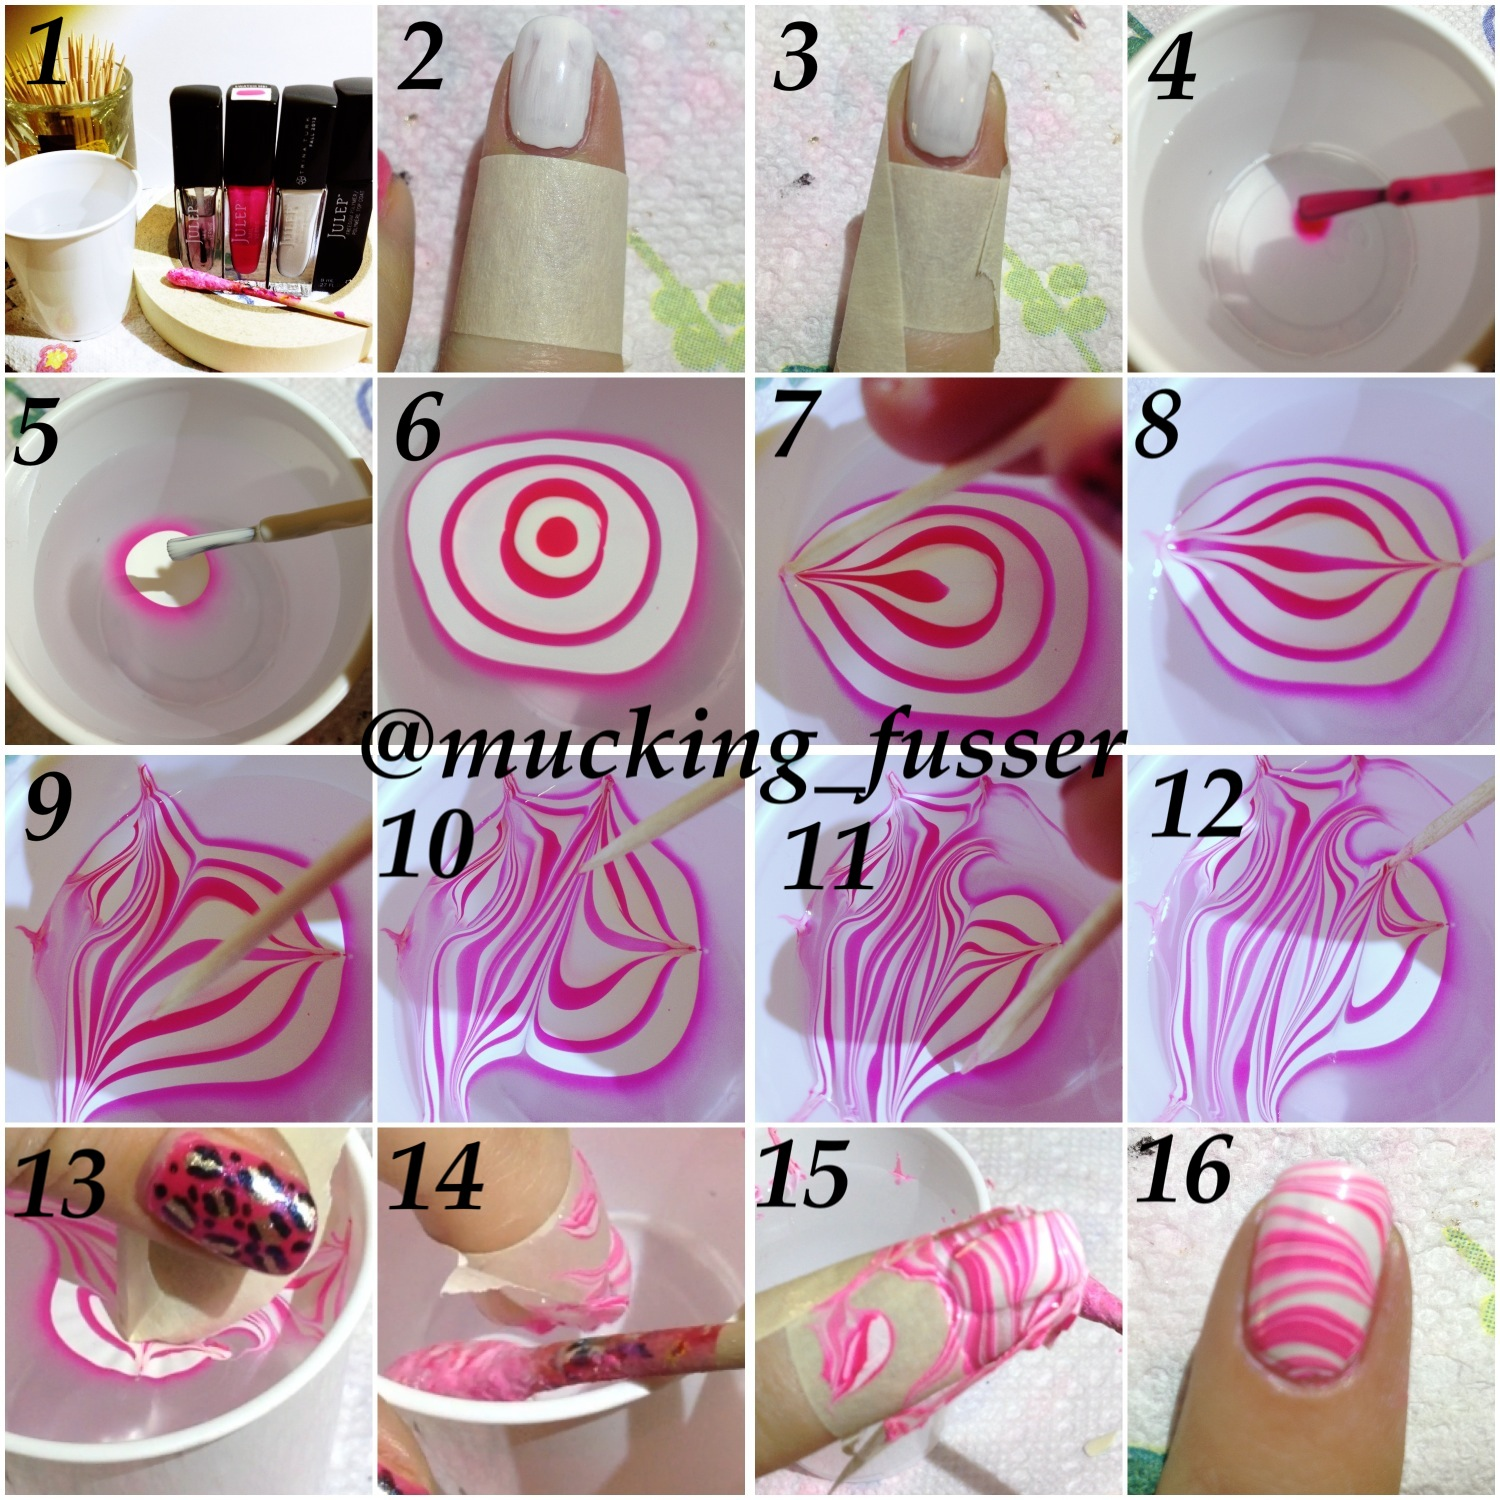 Tutorial striped water marble mucking fusser tutorial striped water marble prinsesfo Choice Image